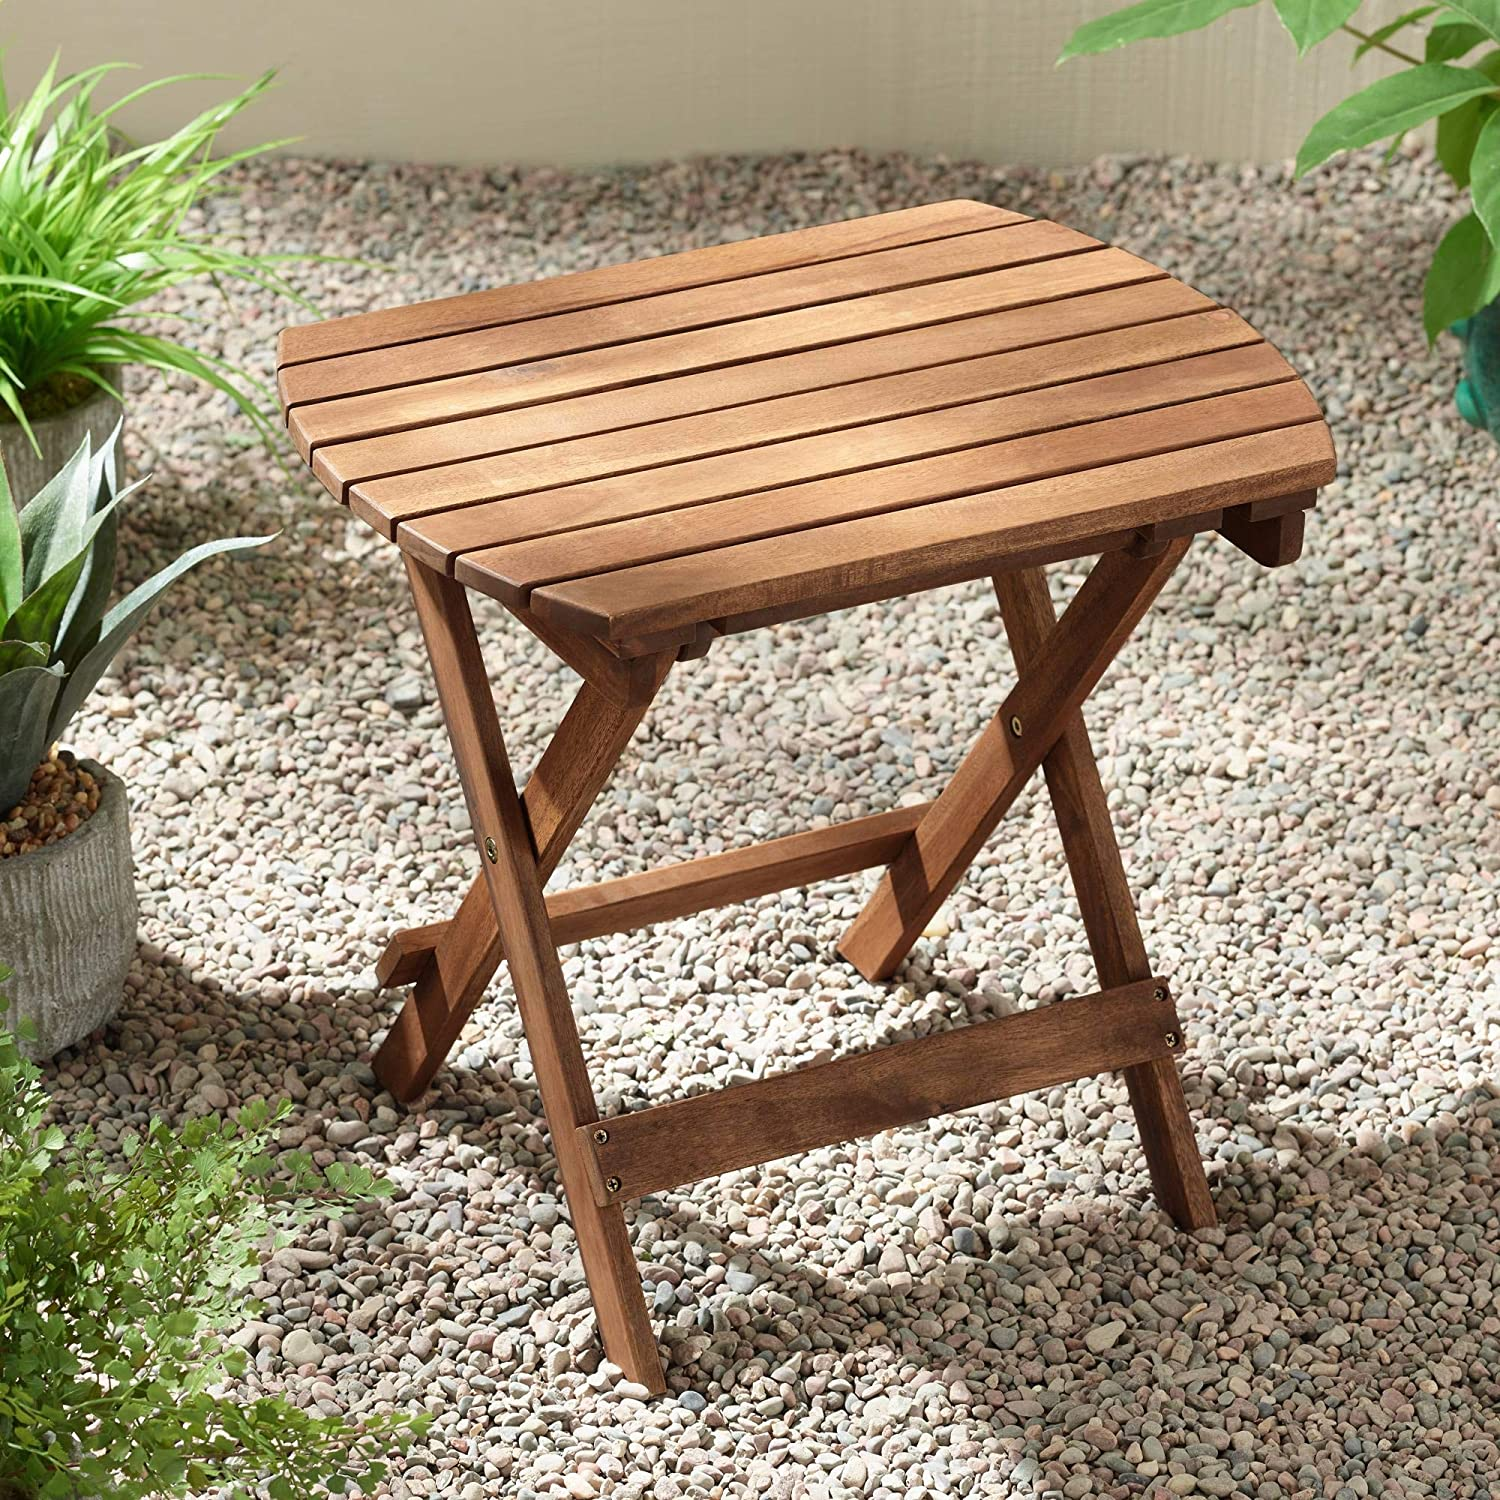 Top Outdoor Side Table Reviews 2020 Best Patio Side Tables For Any Decor